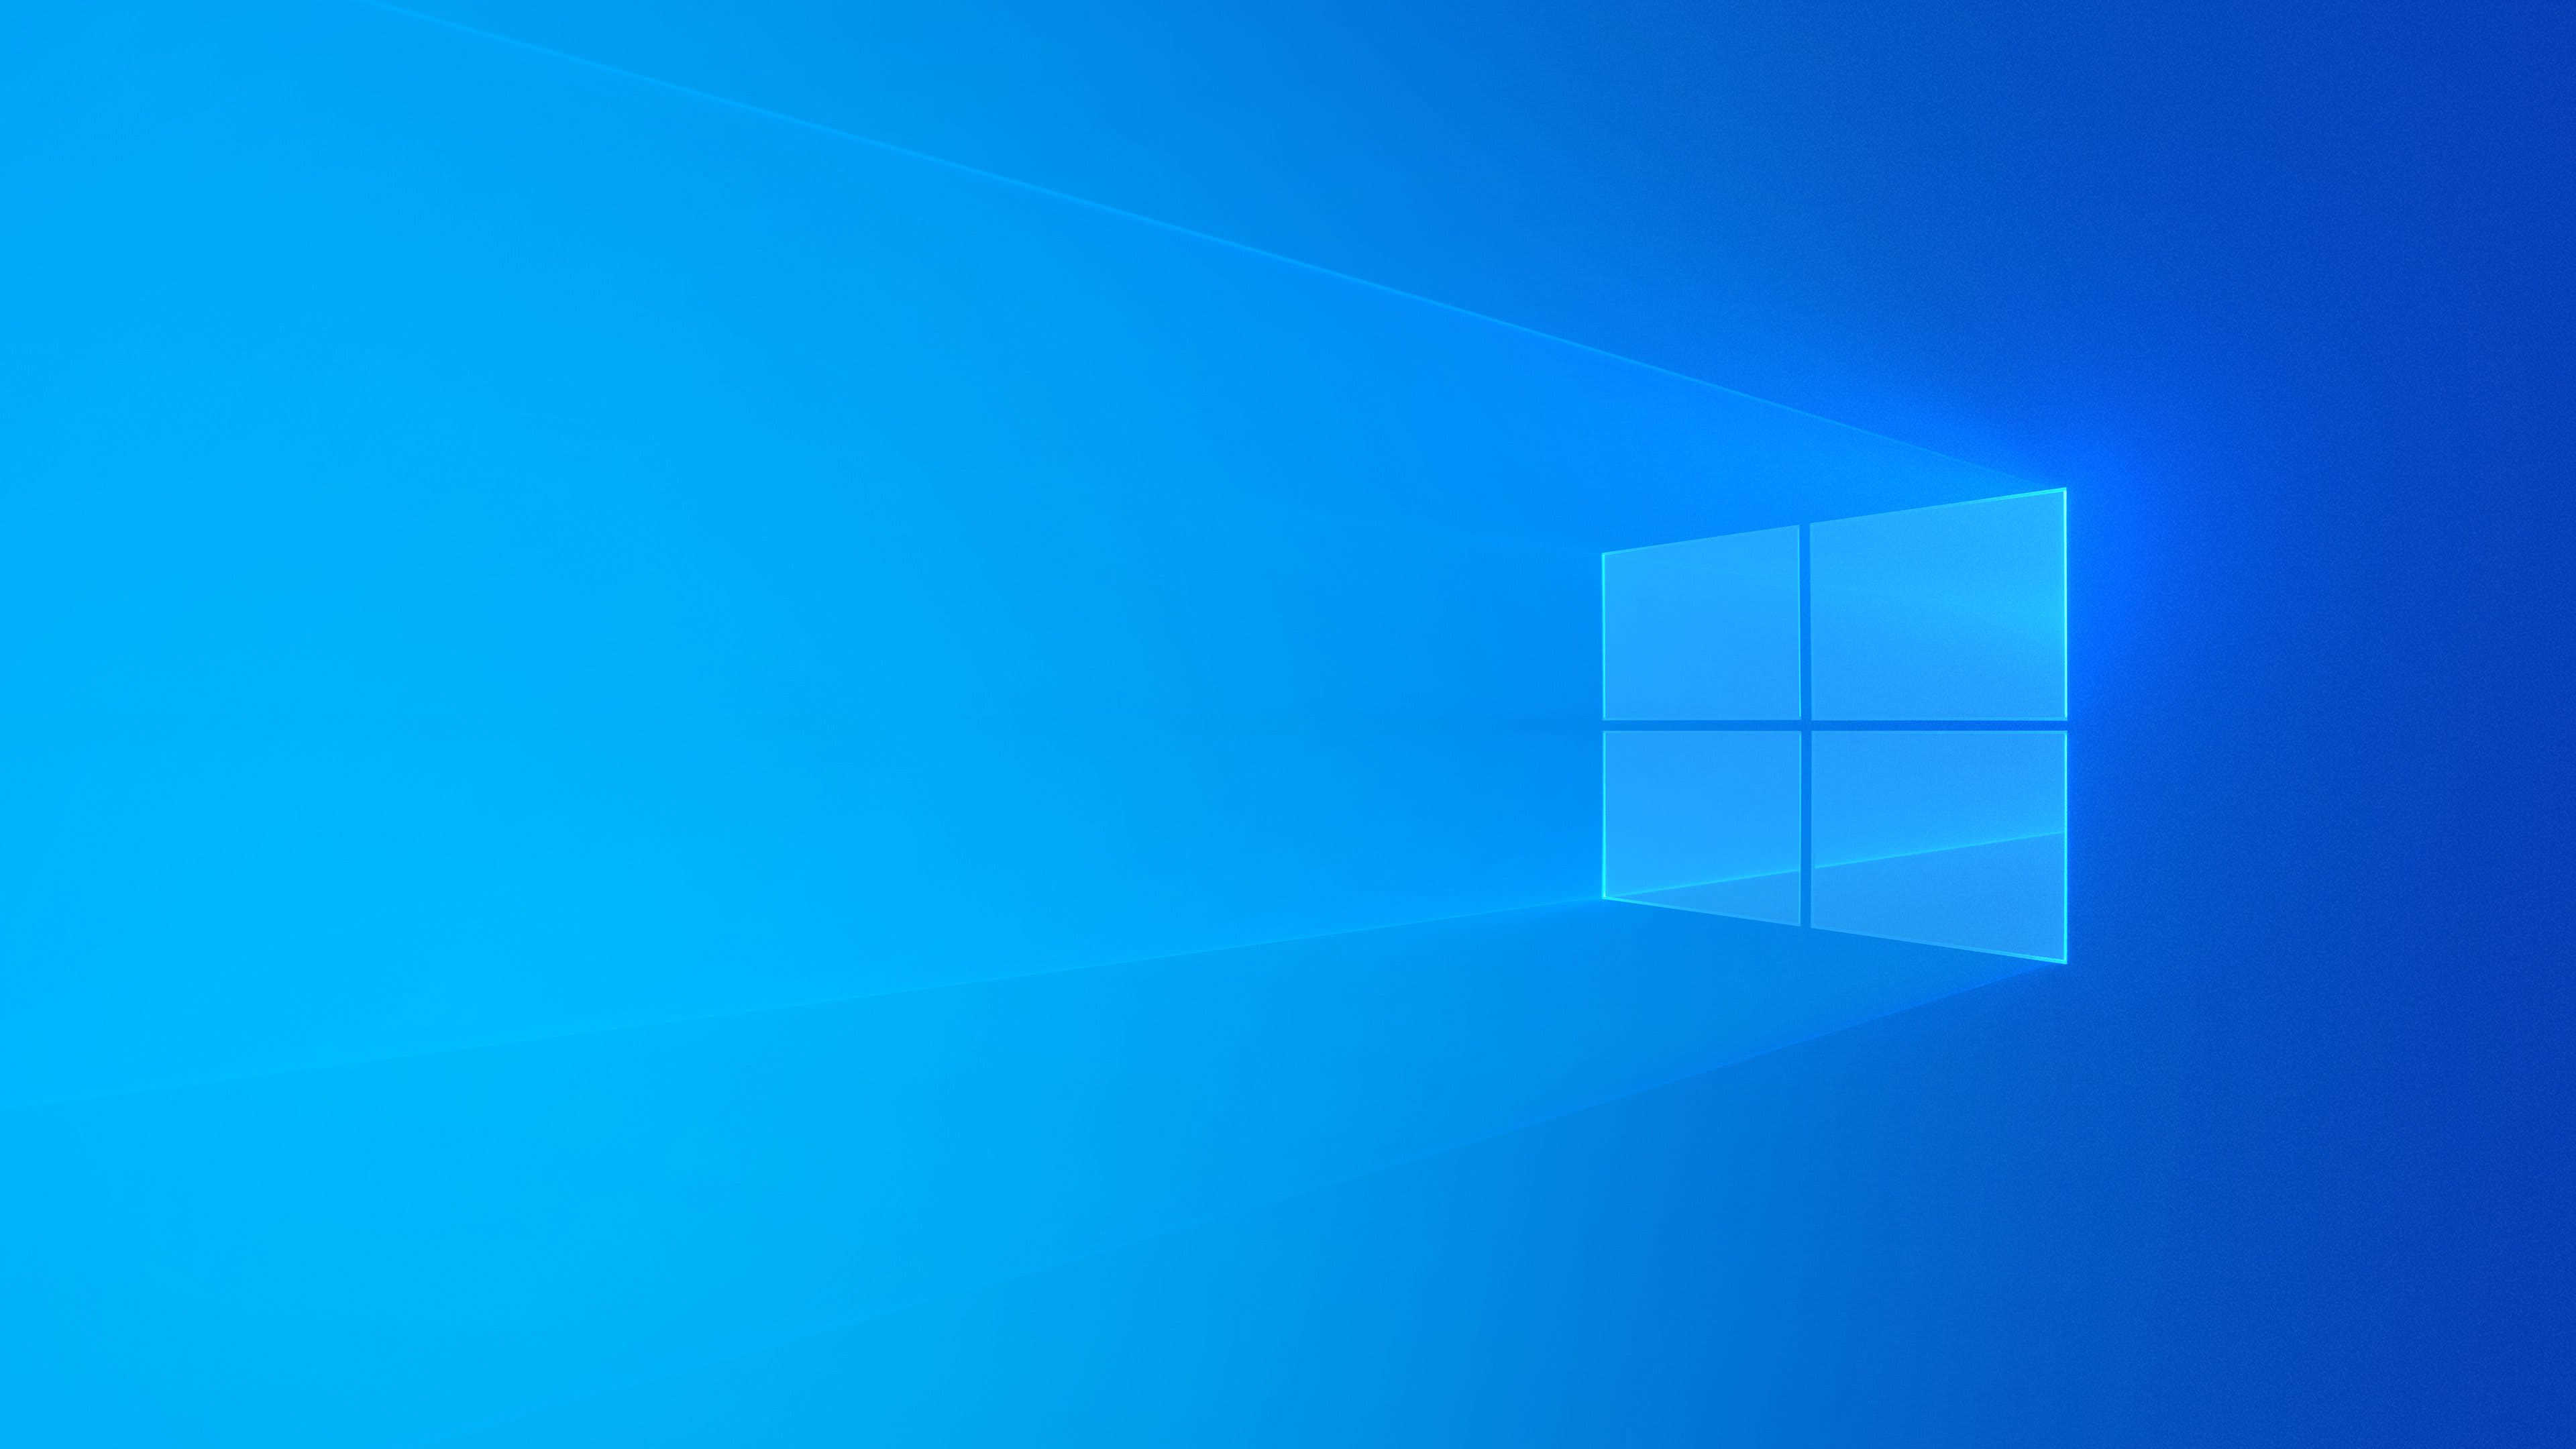 Ultra Hd Full Hd Windows 10 Wallpaper